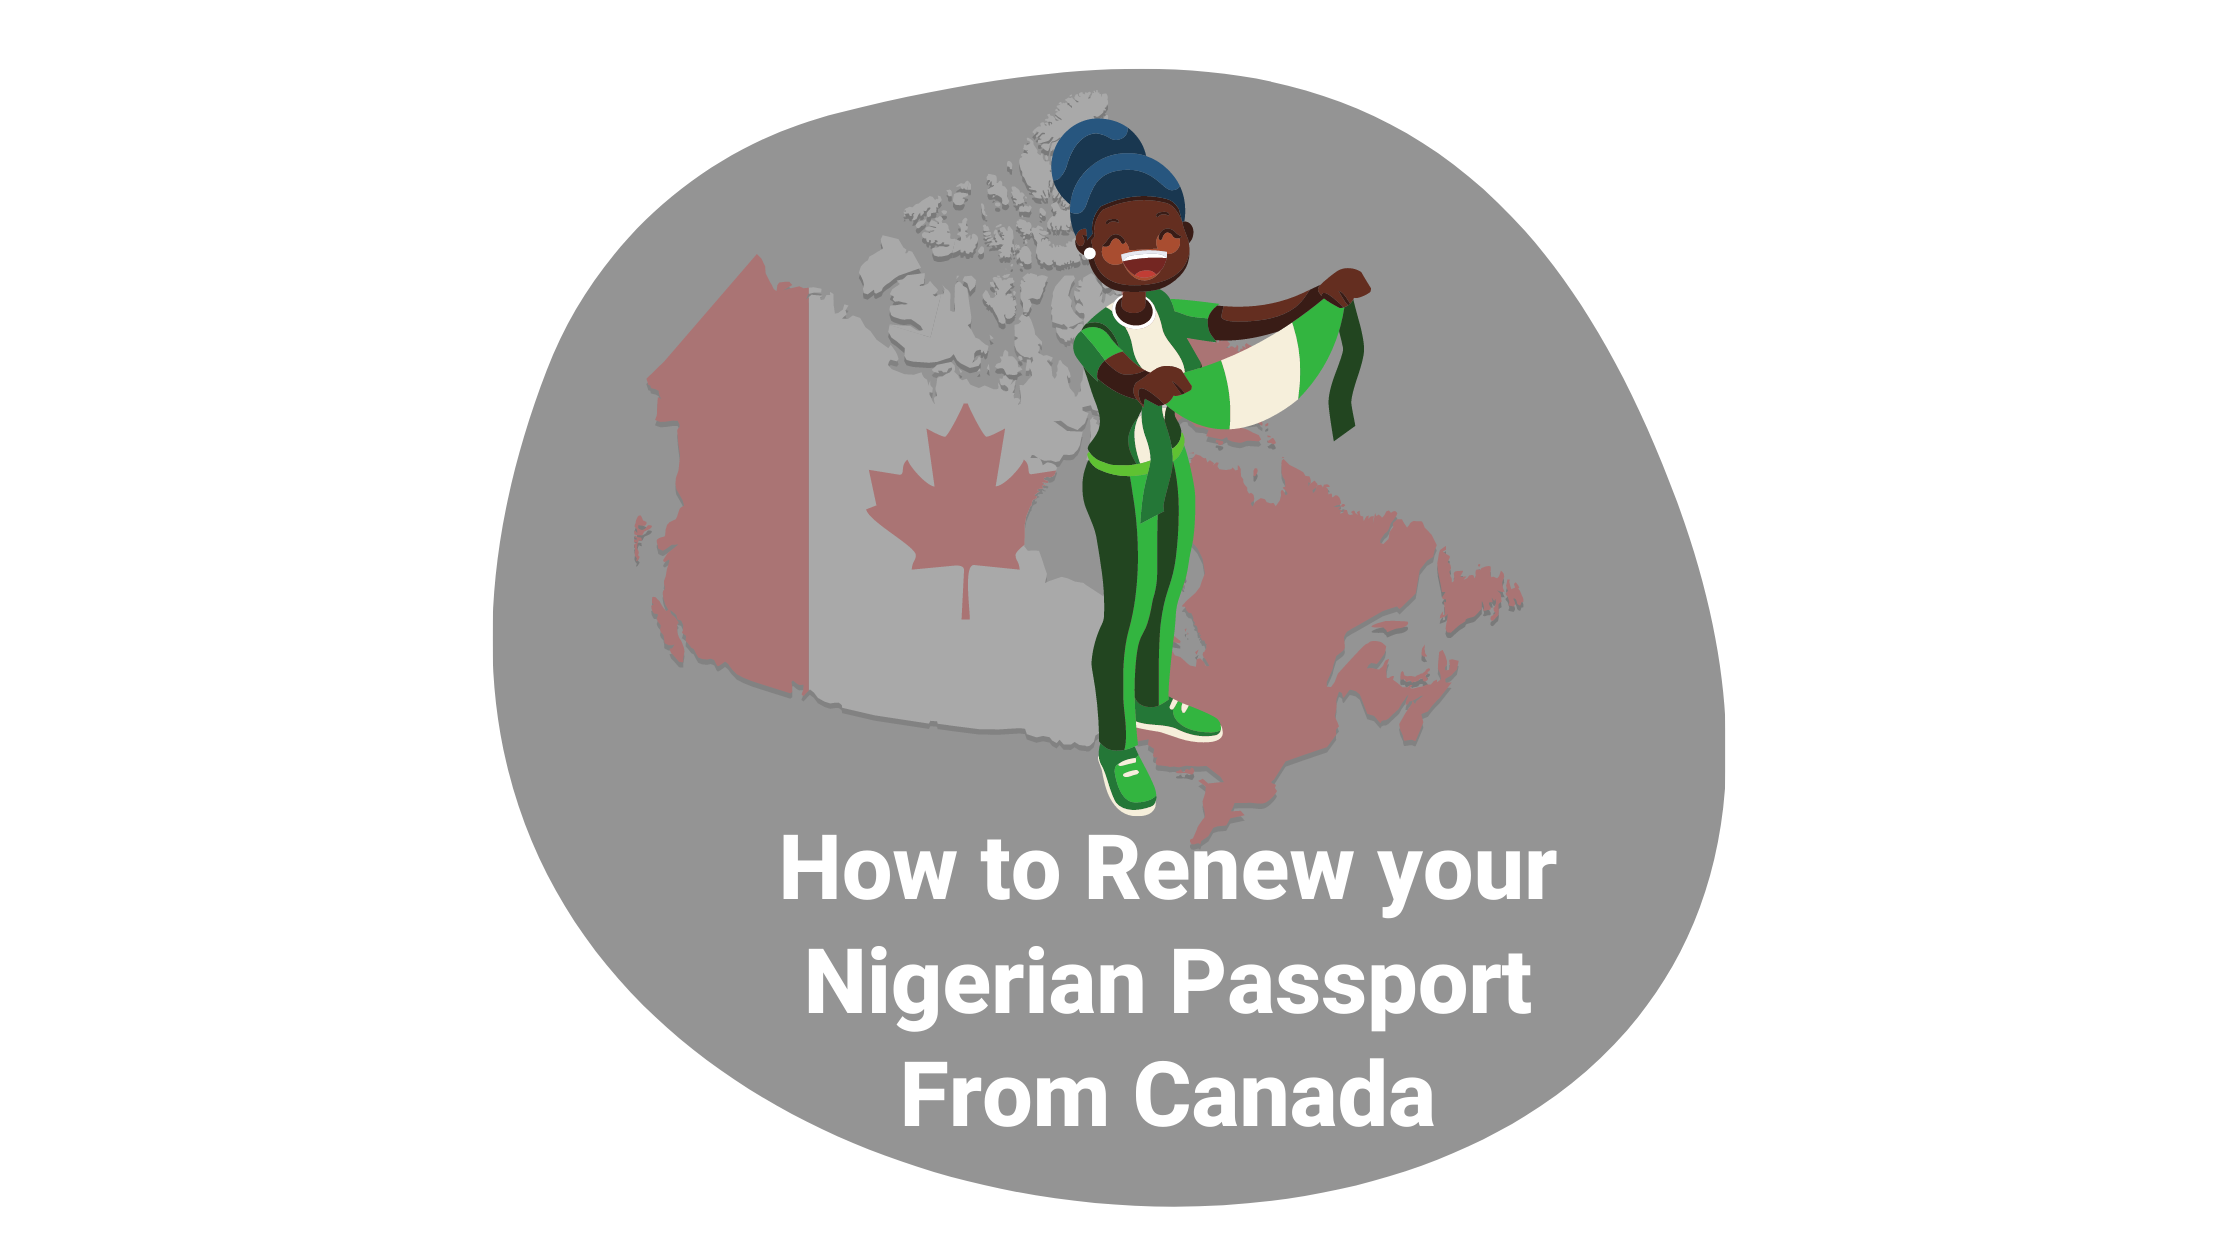 How to Renew Your Nigerian Passport from Canada